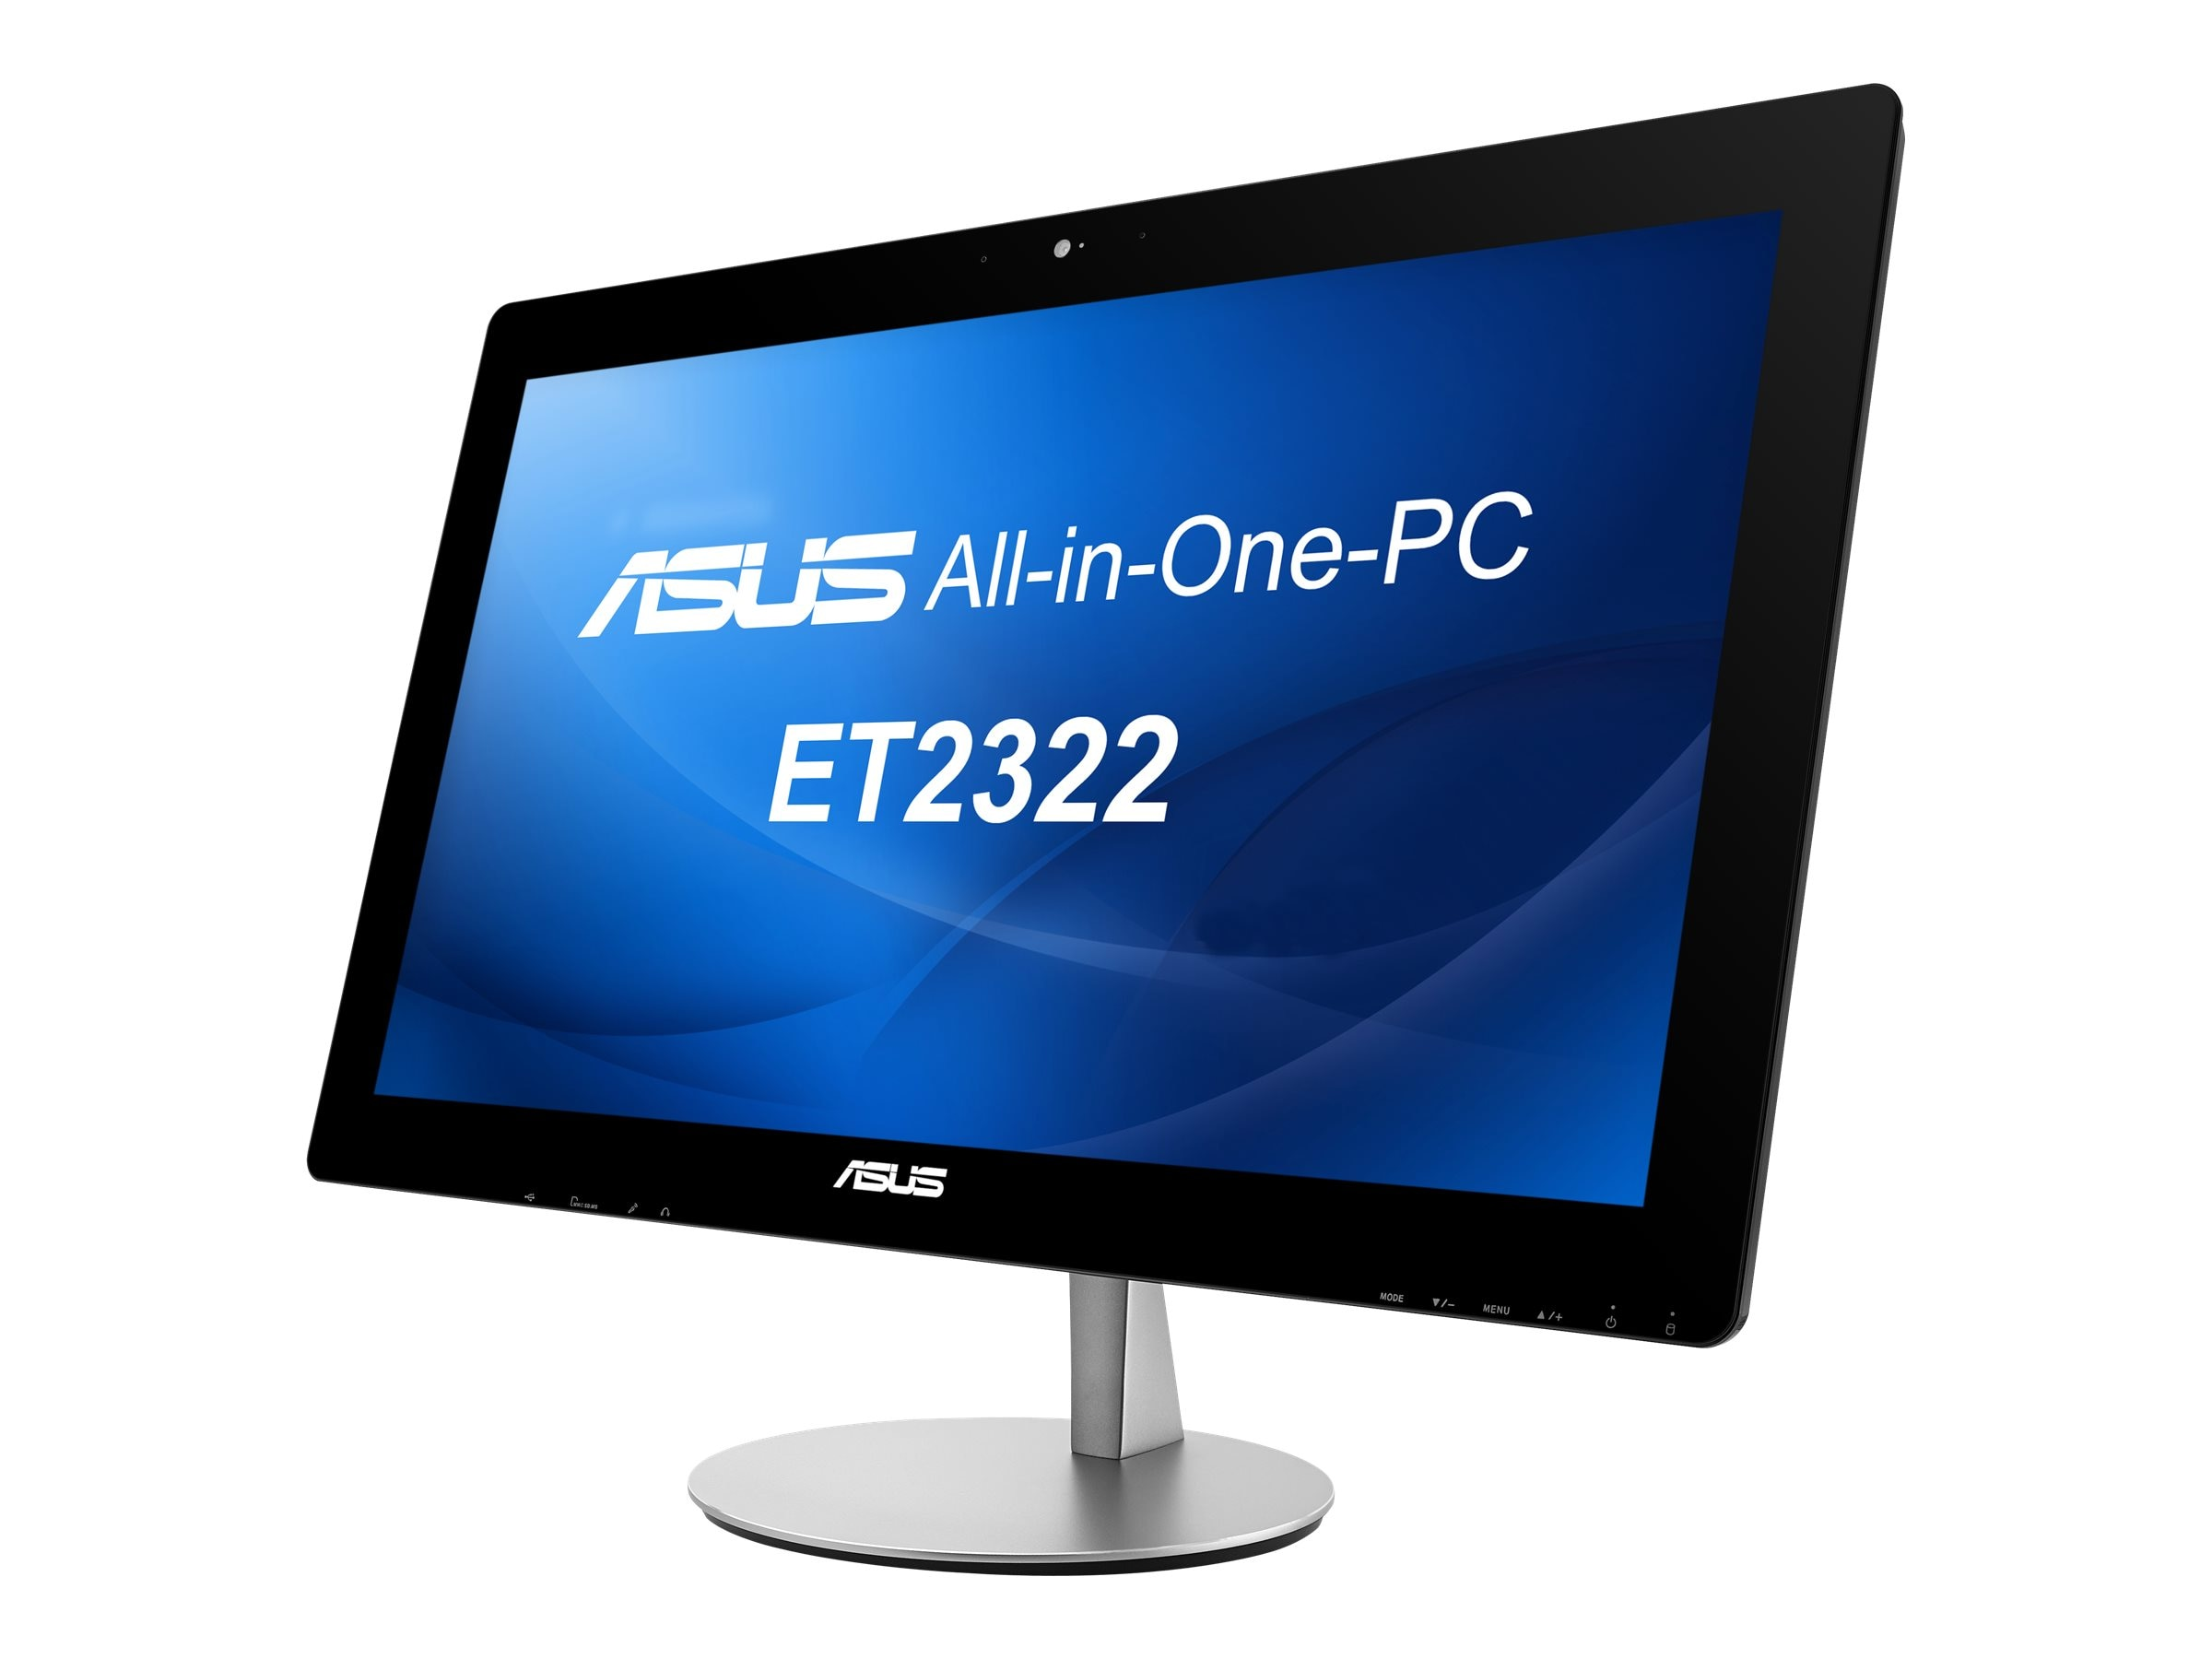 Asus ET2322IUTH-C2 AIO Core i3-4010U 1.7GHz 8GB 1TB IntelHD DVD-RW ac BT WC 23 FHD MT W8.164, ET2322IUTH-C2, 17950141, Desktops - All-in-One